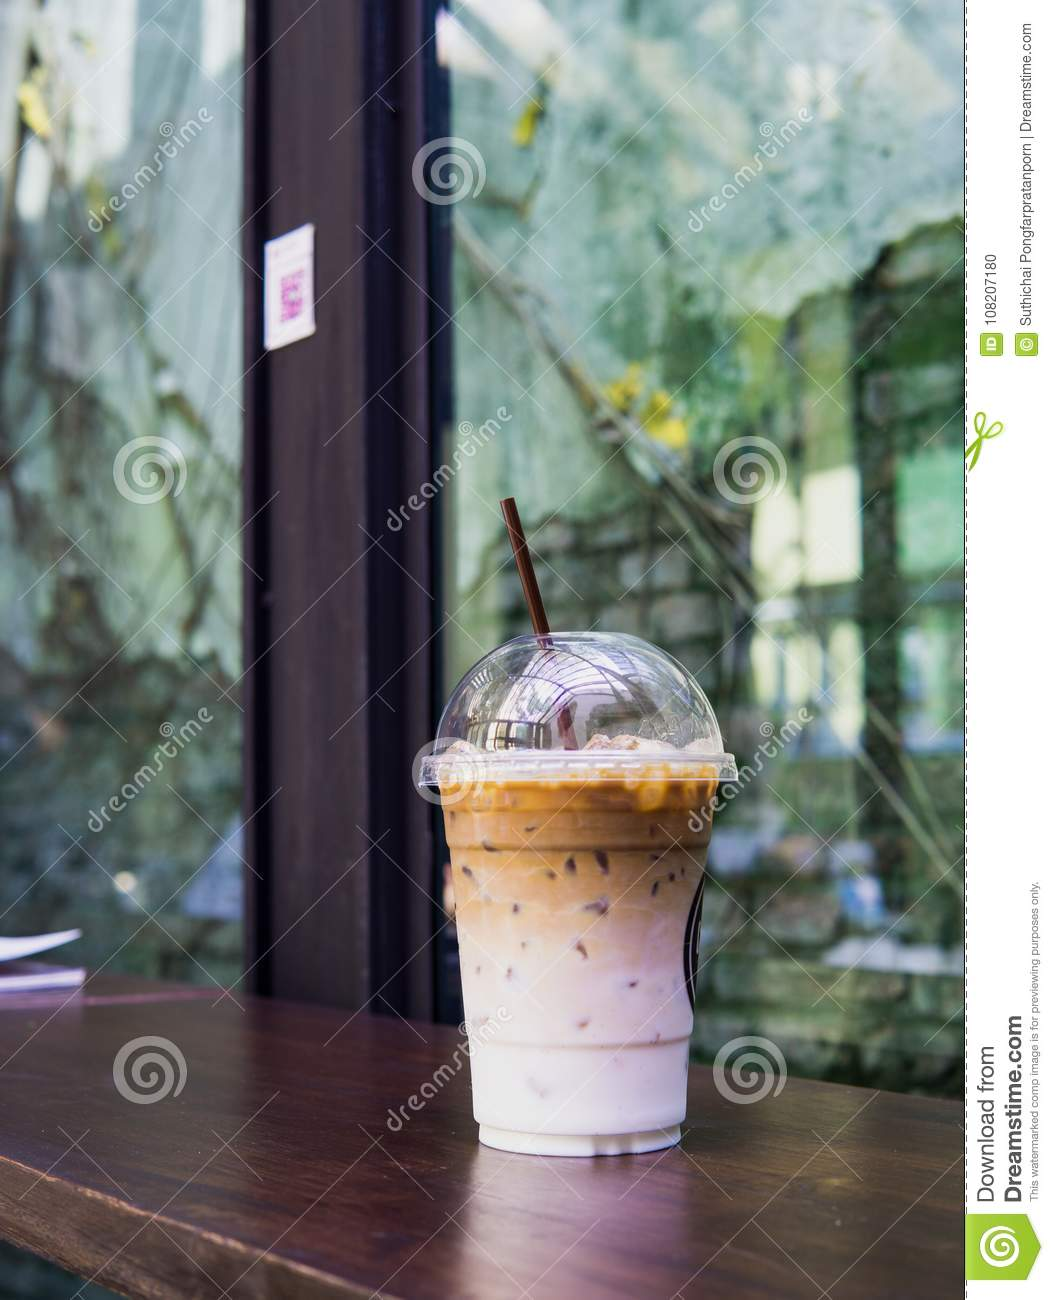 Ice coffee latte in takeaway cup on wood table. Takeaway ice latte in plastic cup with straw on wood table. Cafe shop background w